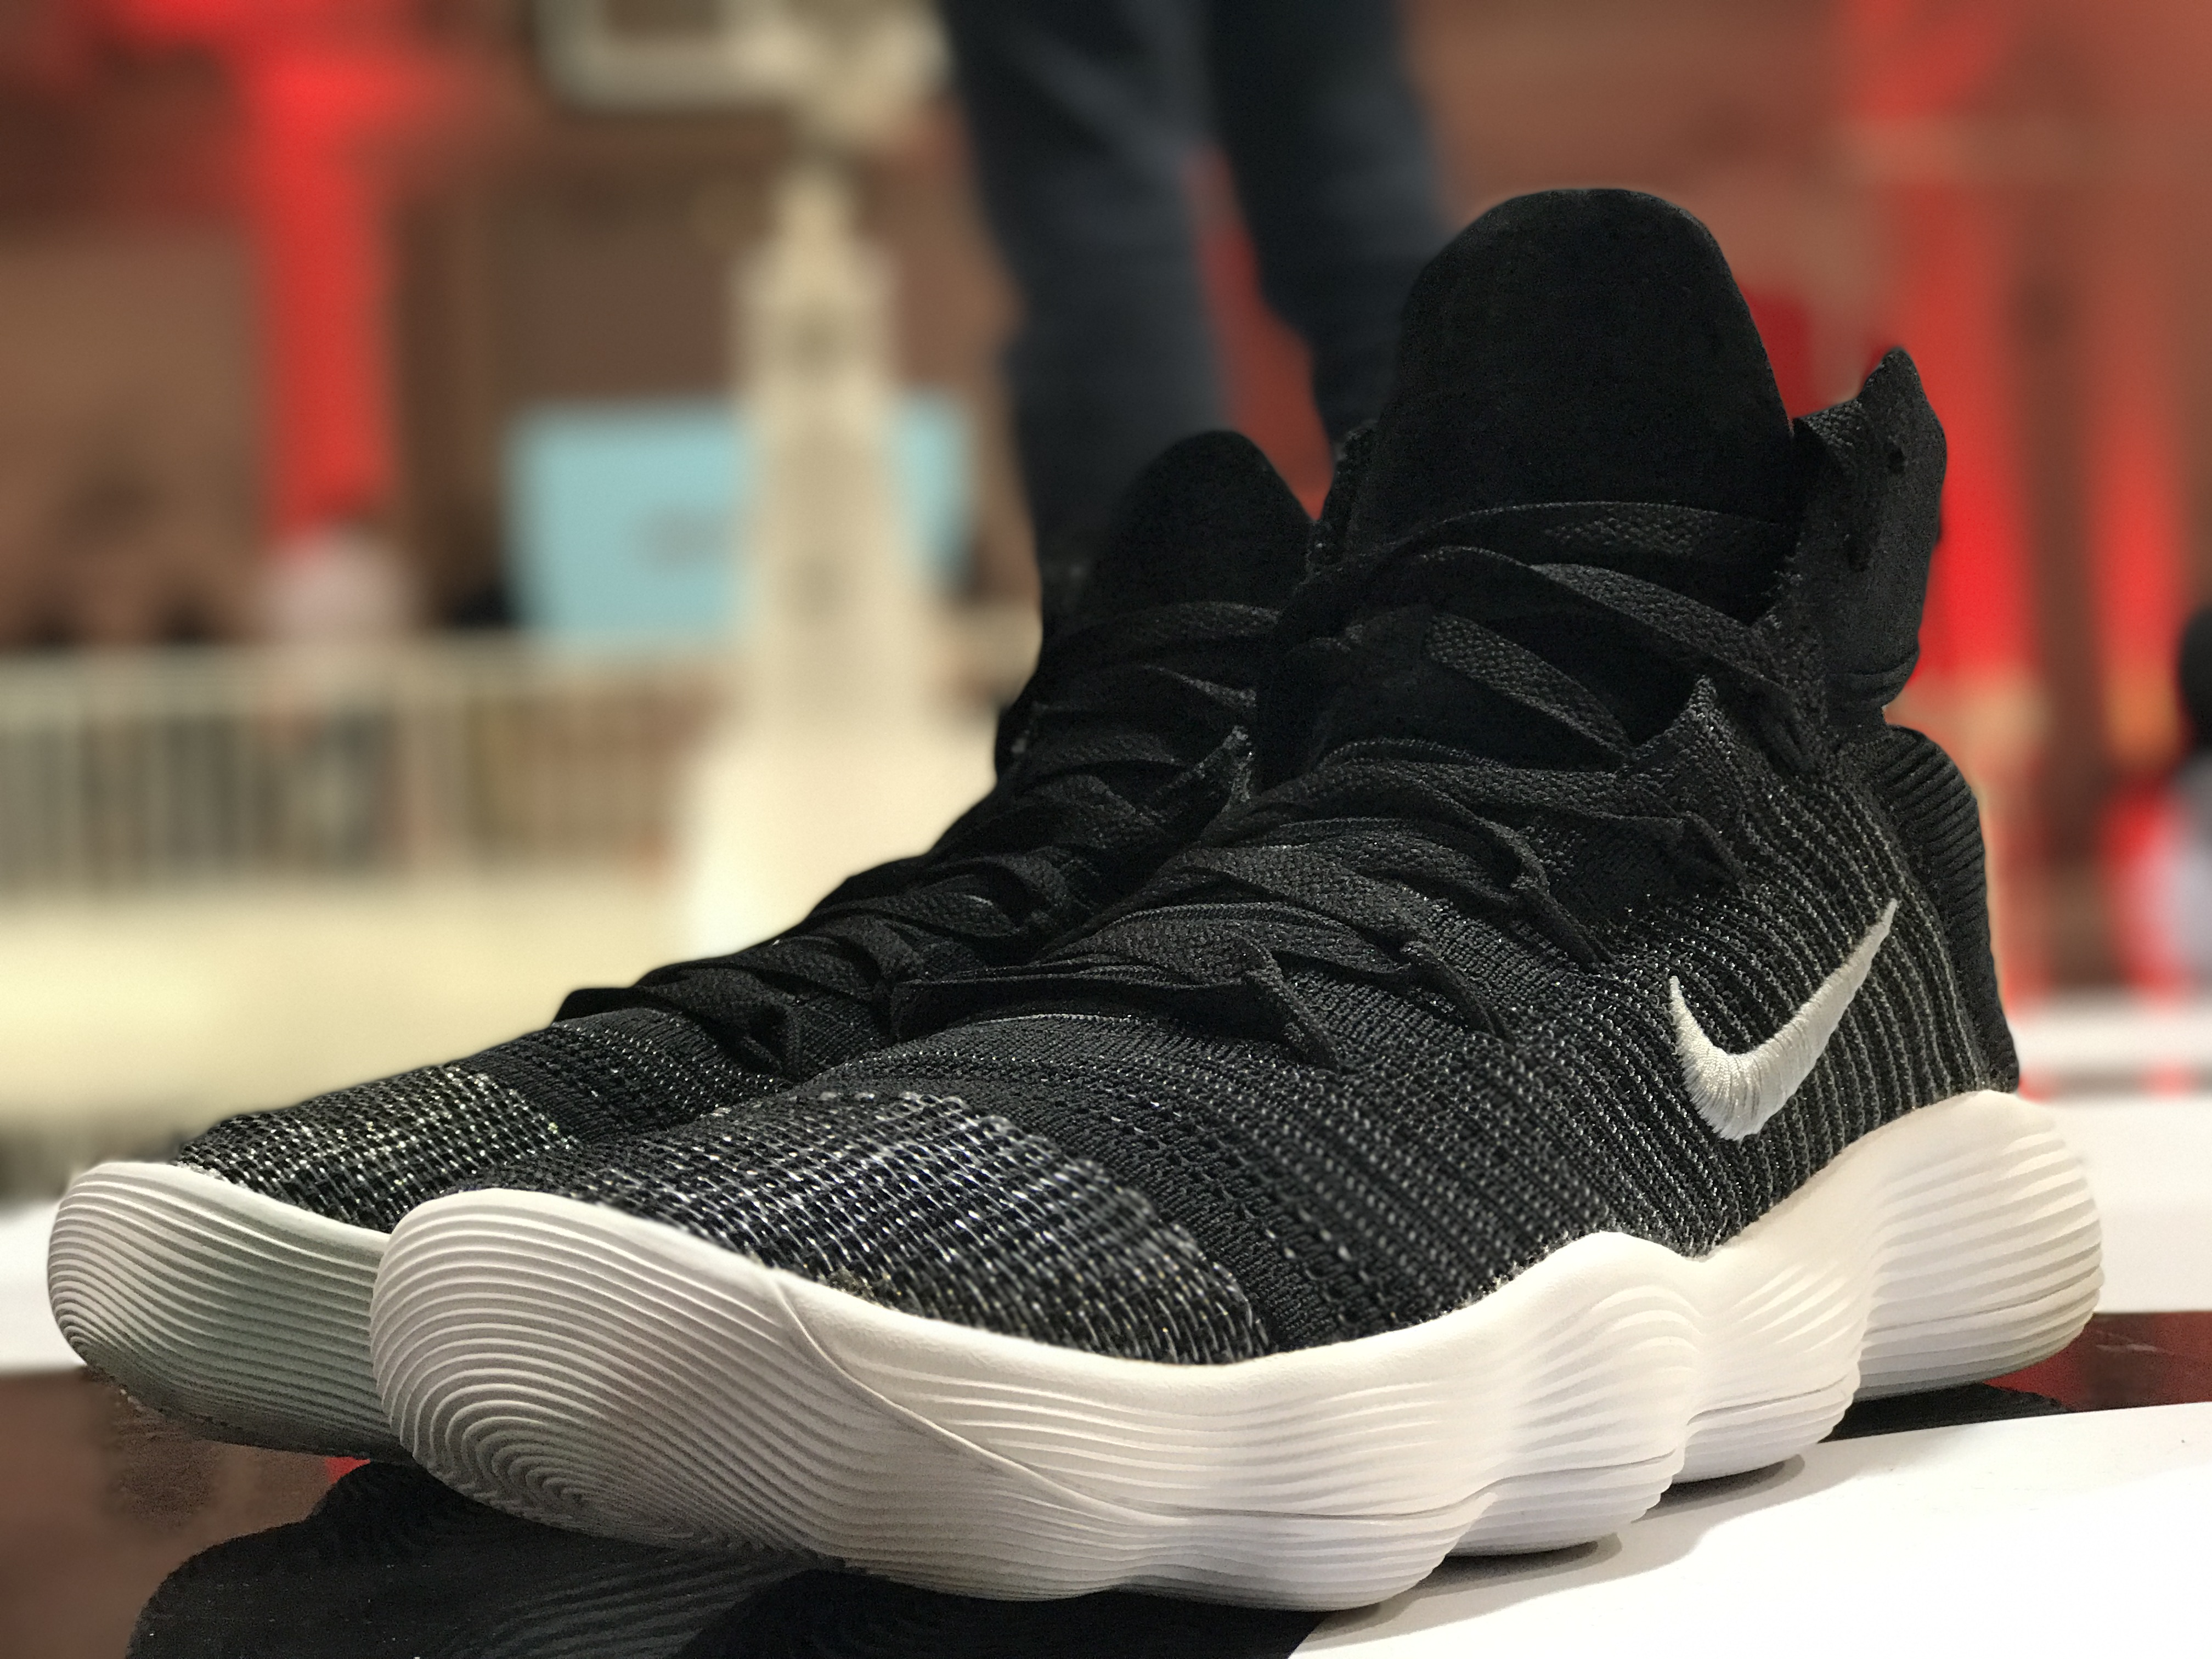 Dar domingo Desalentar  Nike React Hyperdunk 2017 Flyknit Performance Review | Stanley T. -  WearTesters